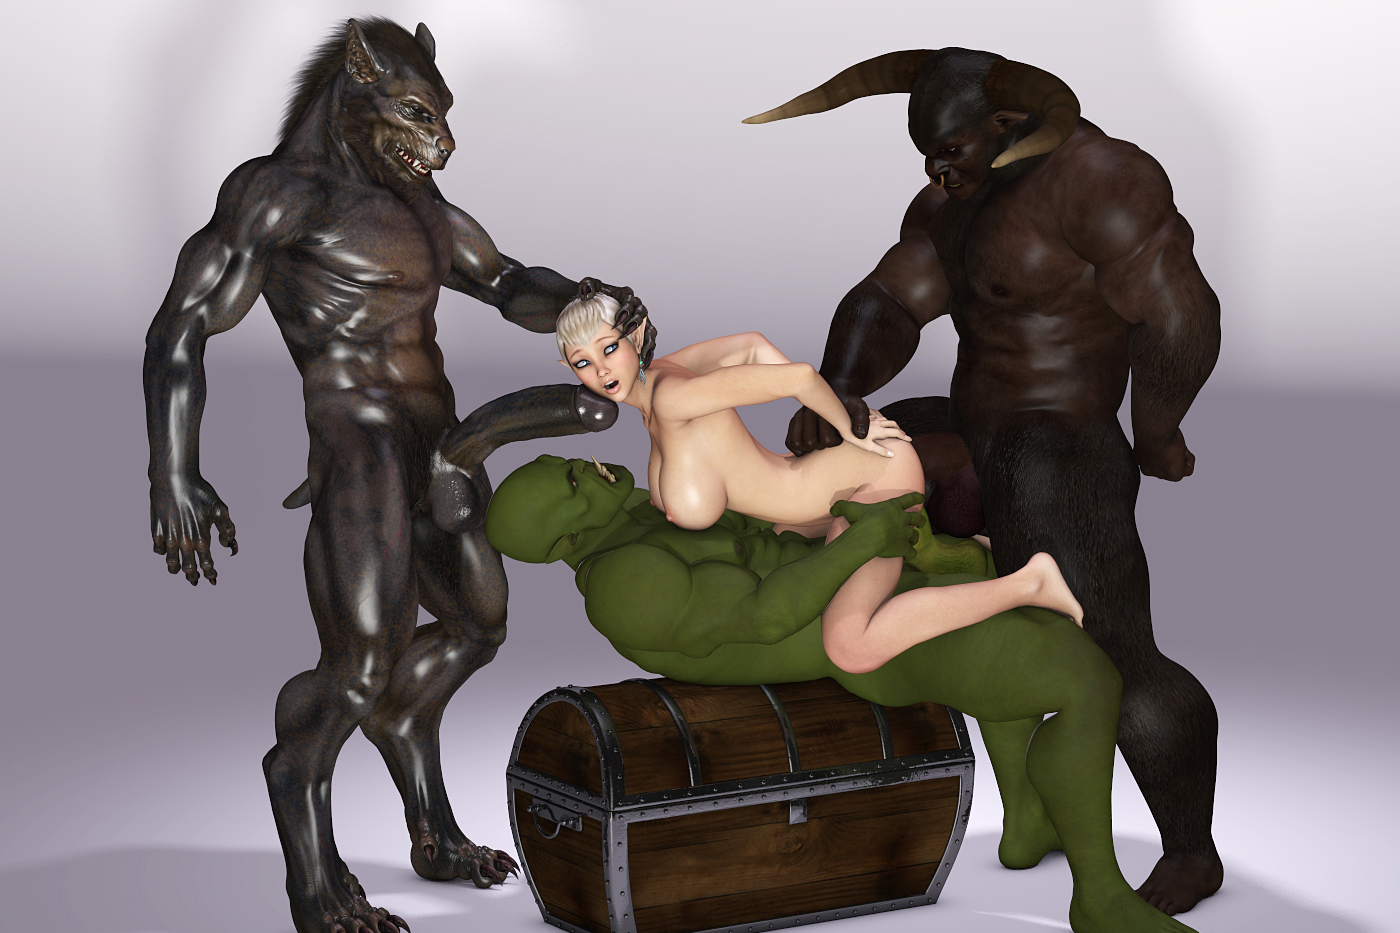 Busty hentai gangbang monsters elf sex pic